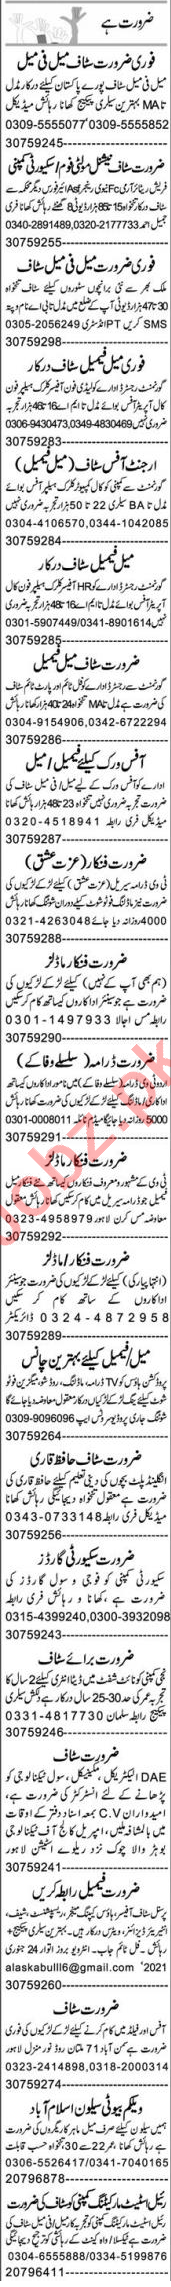 Purchase Assistant & Admin Assistant Jobs 2021 in Lahore